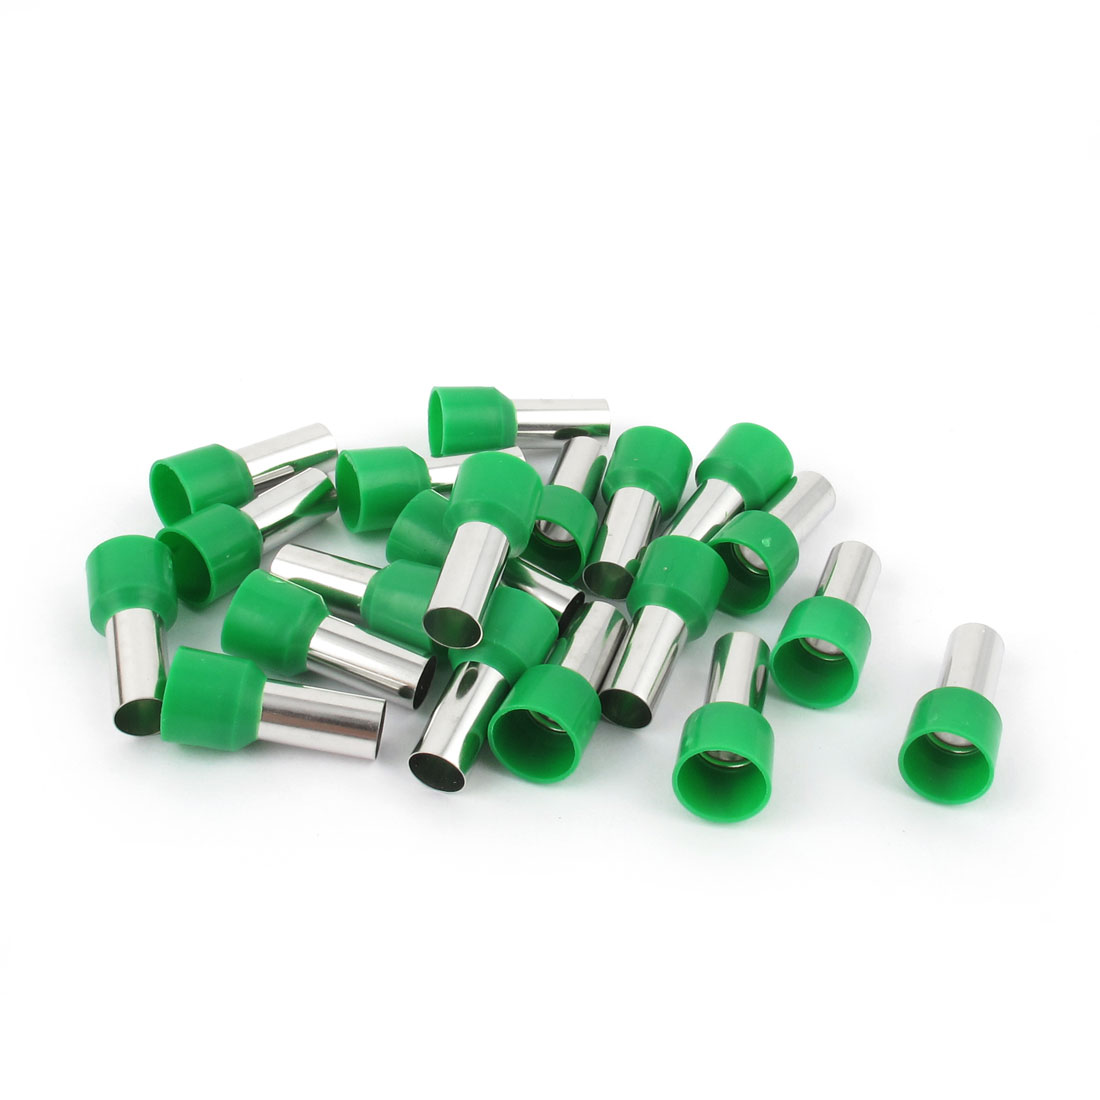 Unique Bargains 20 Pcs Wire Crimp Connector Terminal Insulated Ferrule Green E16-12 6AWG 16mm2